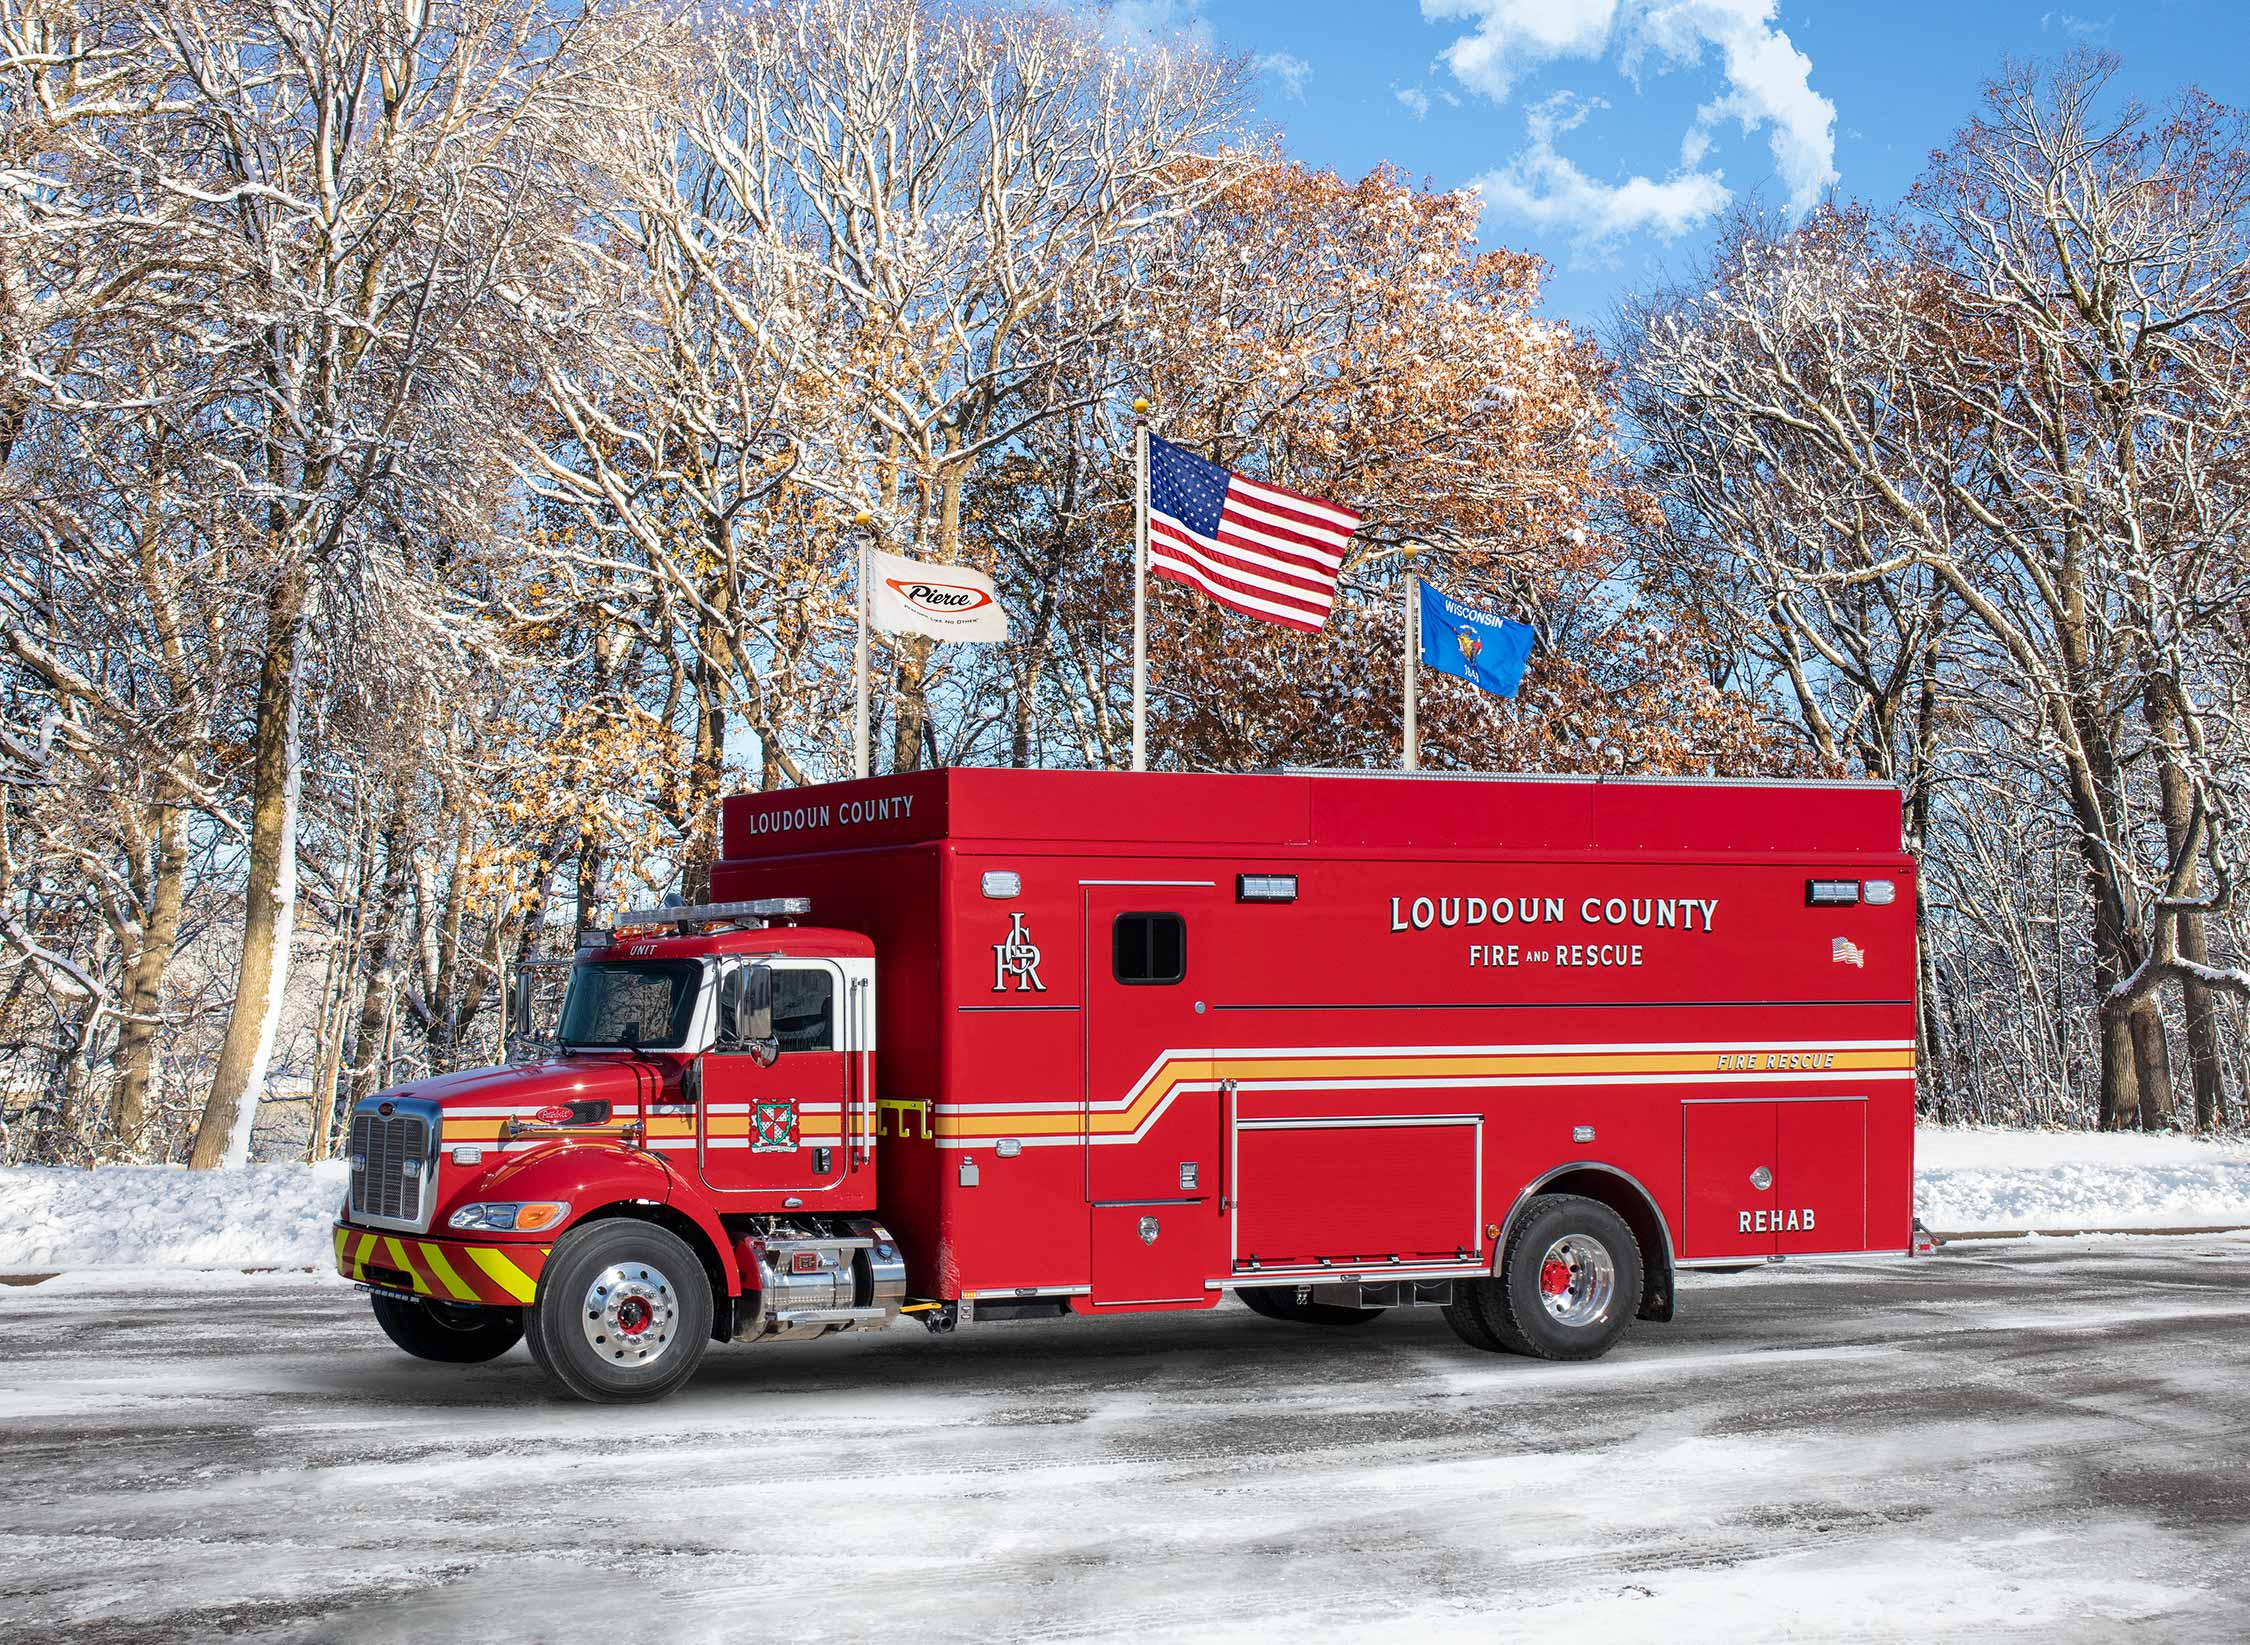 Loudoun County Department of Fire & Emergency Serv - Rescue